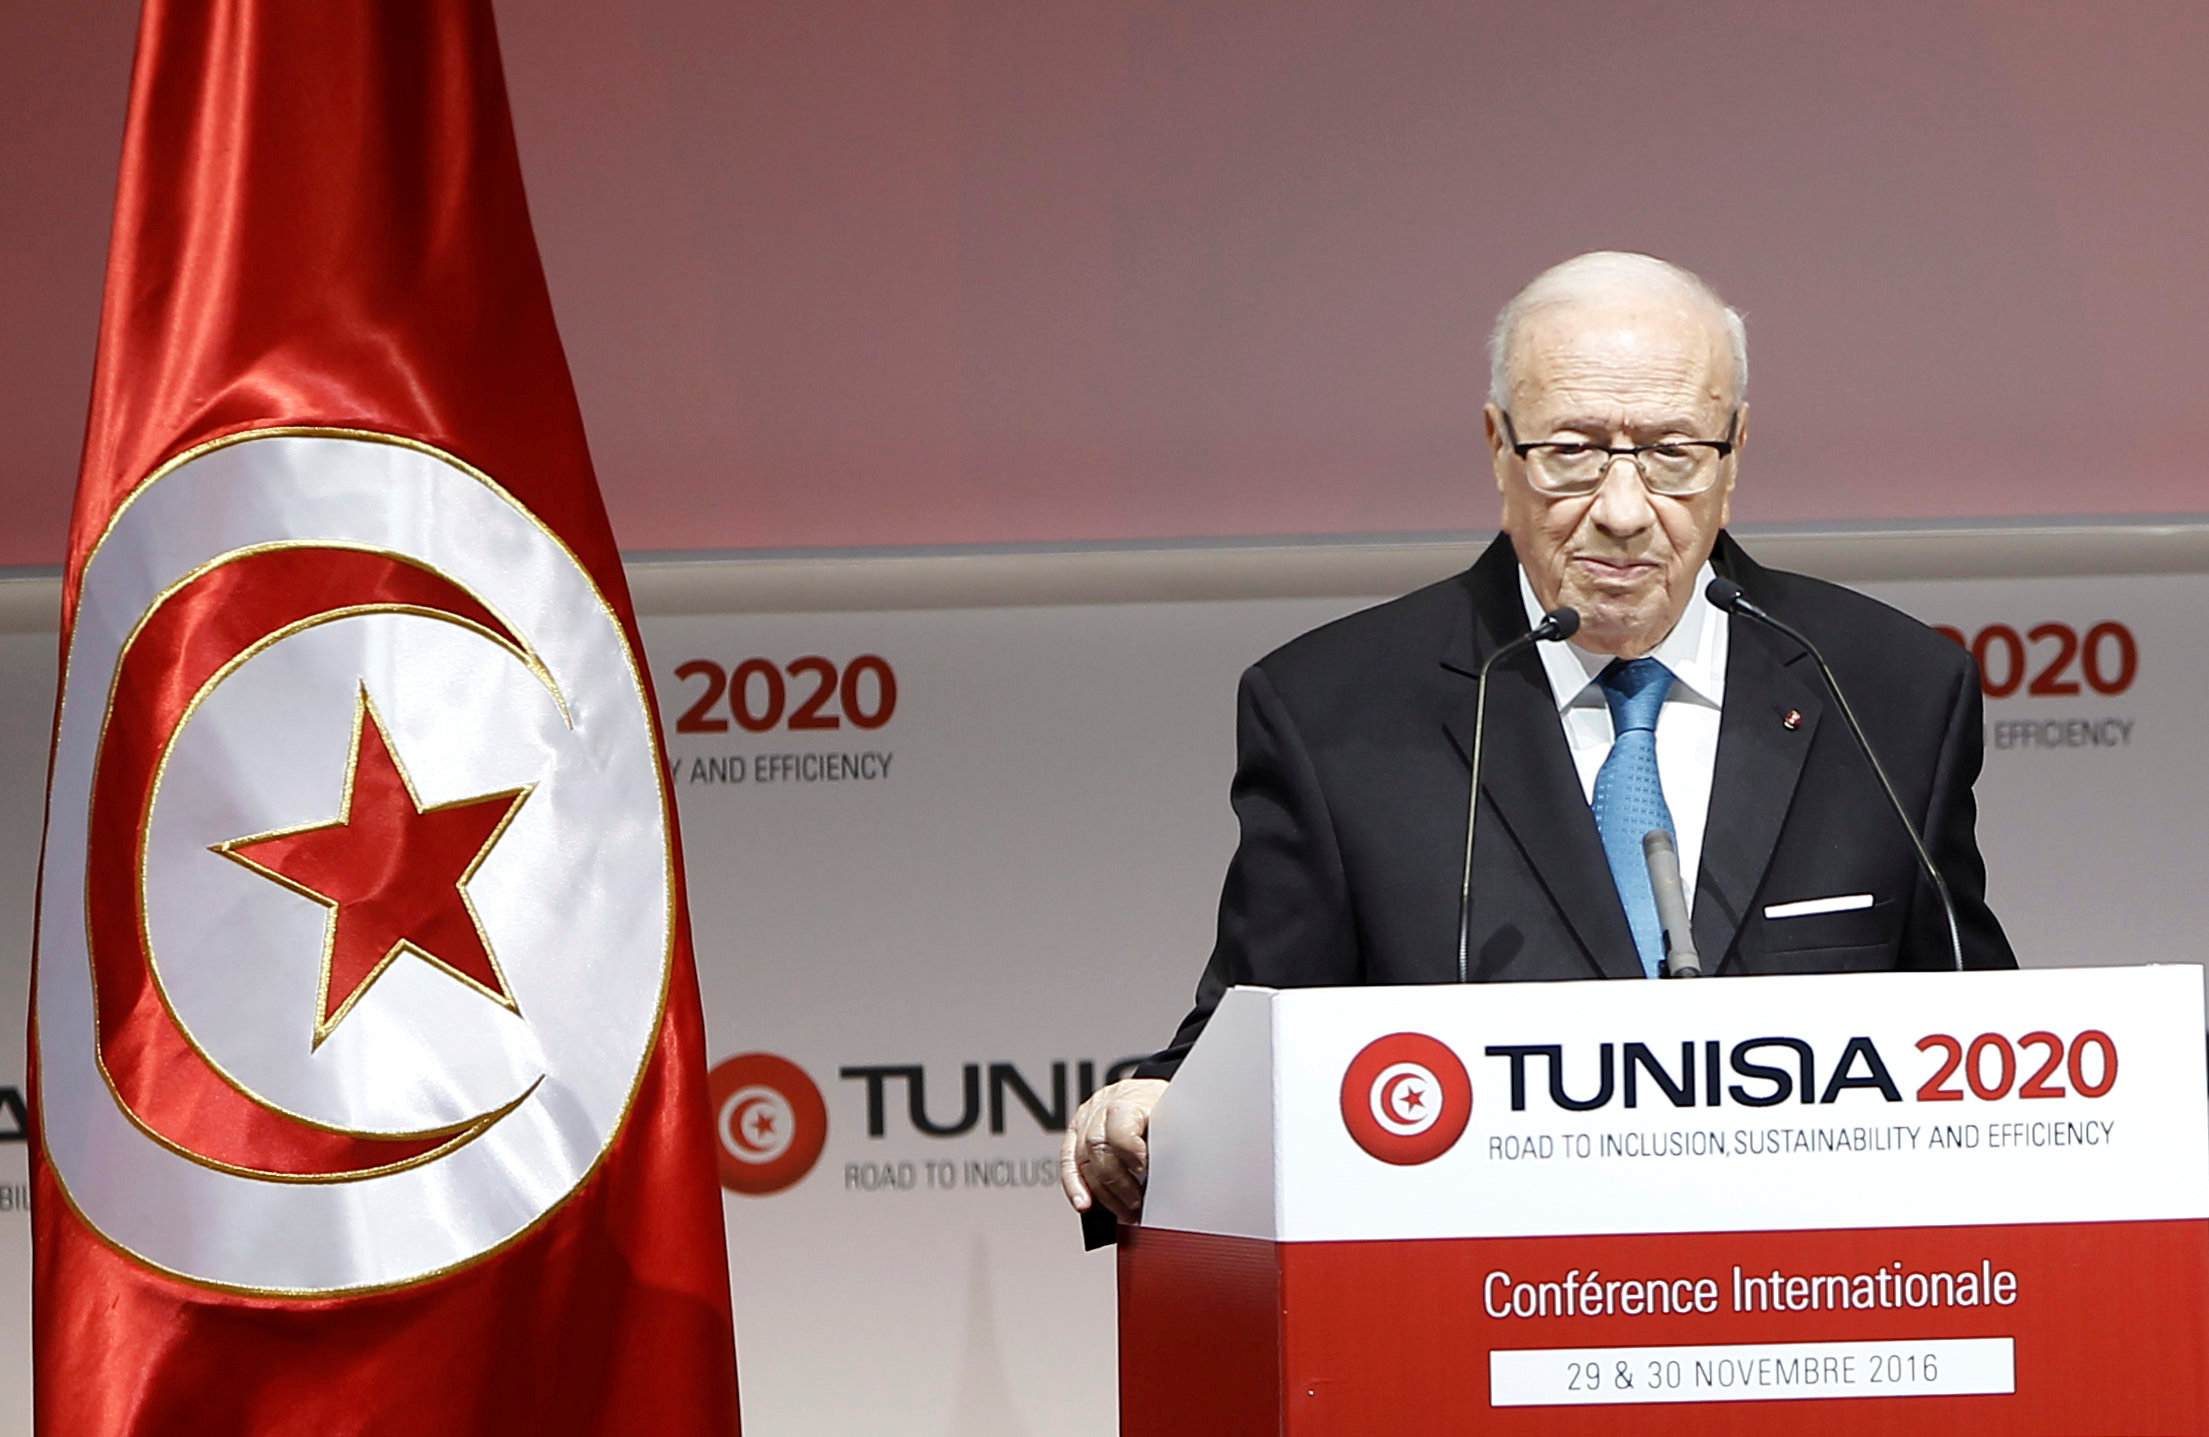 Tunisia's President Beji Caid Essebsi speaks during the opening of international investment conference Tunisia 2020, in Tunis